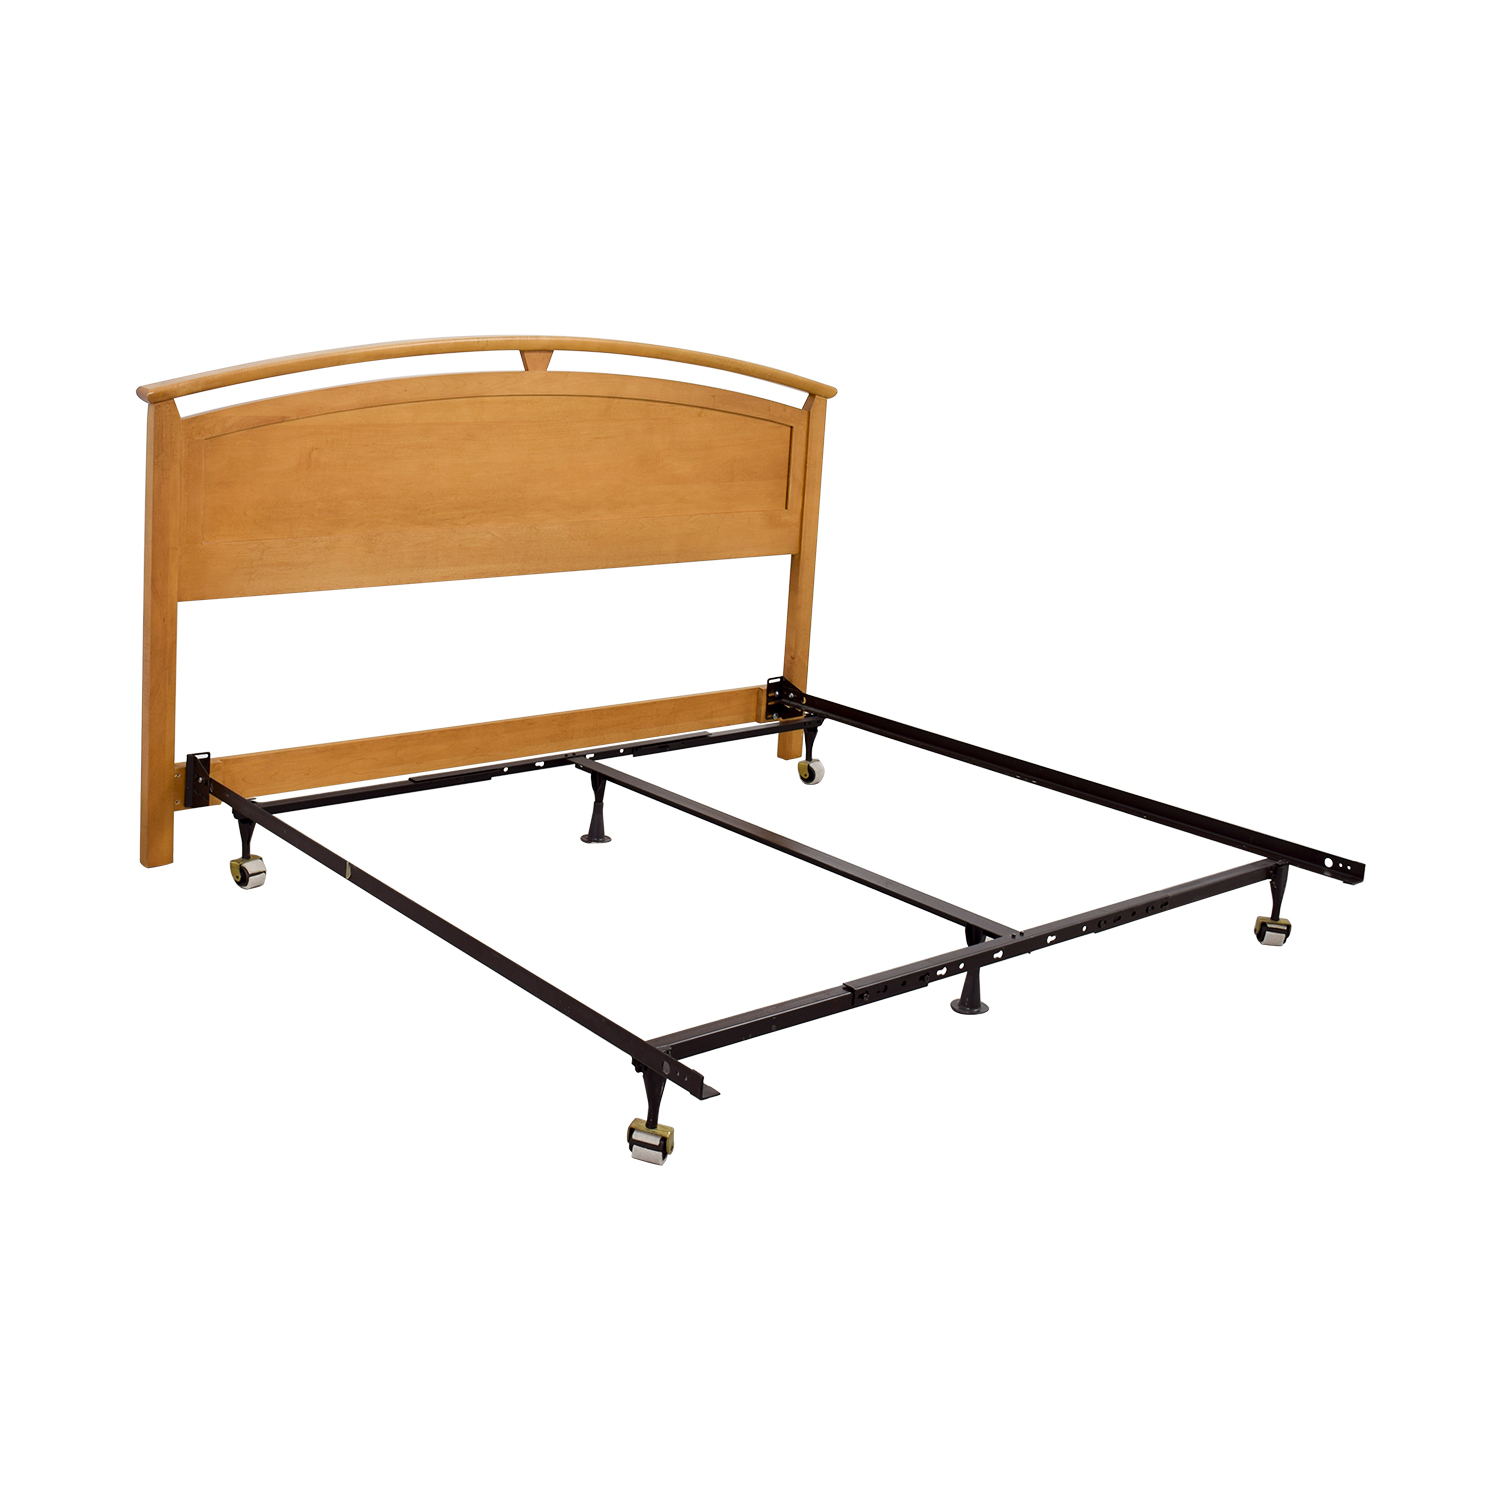 Ethan Allen Ethan Allen King Maple Headboard with Metal Frame second hand